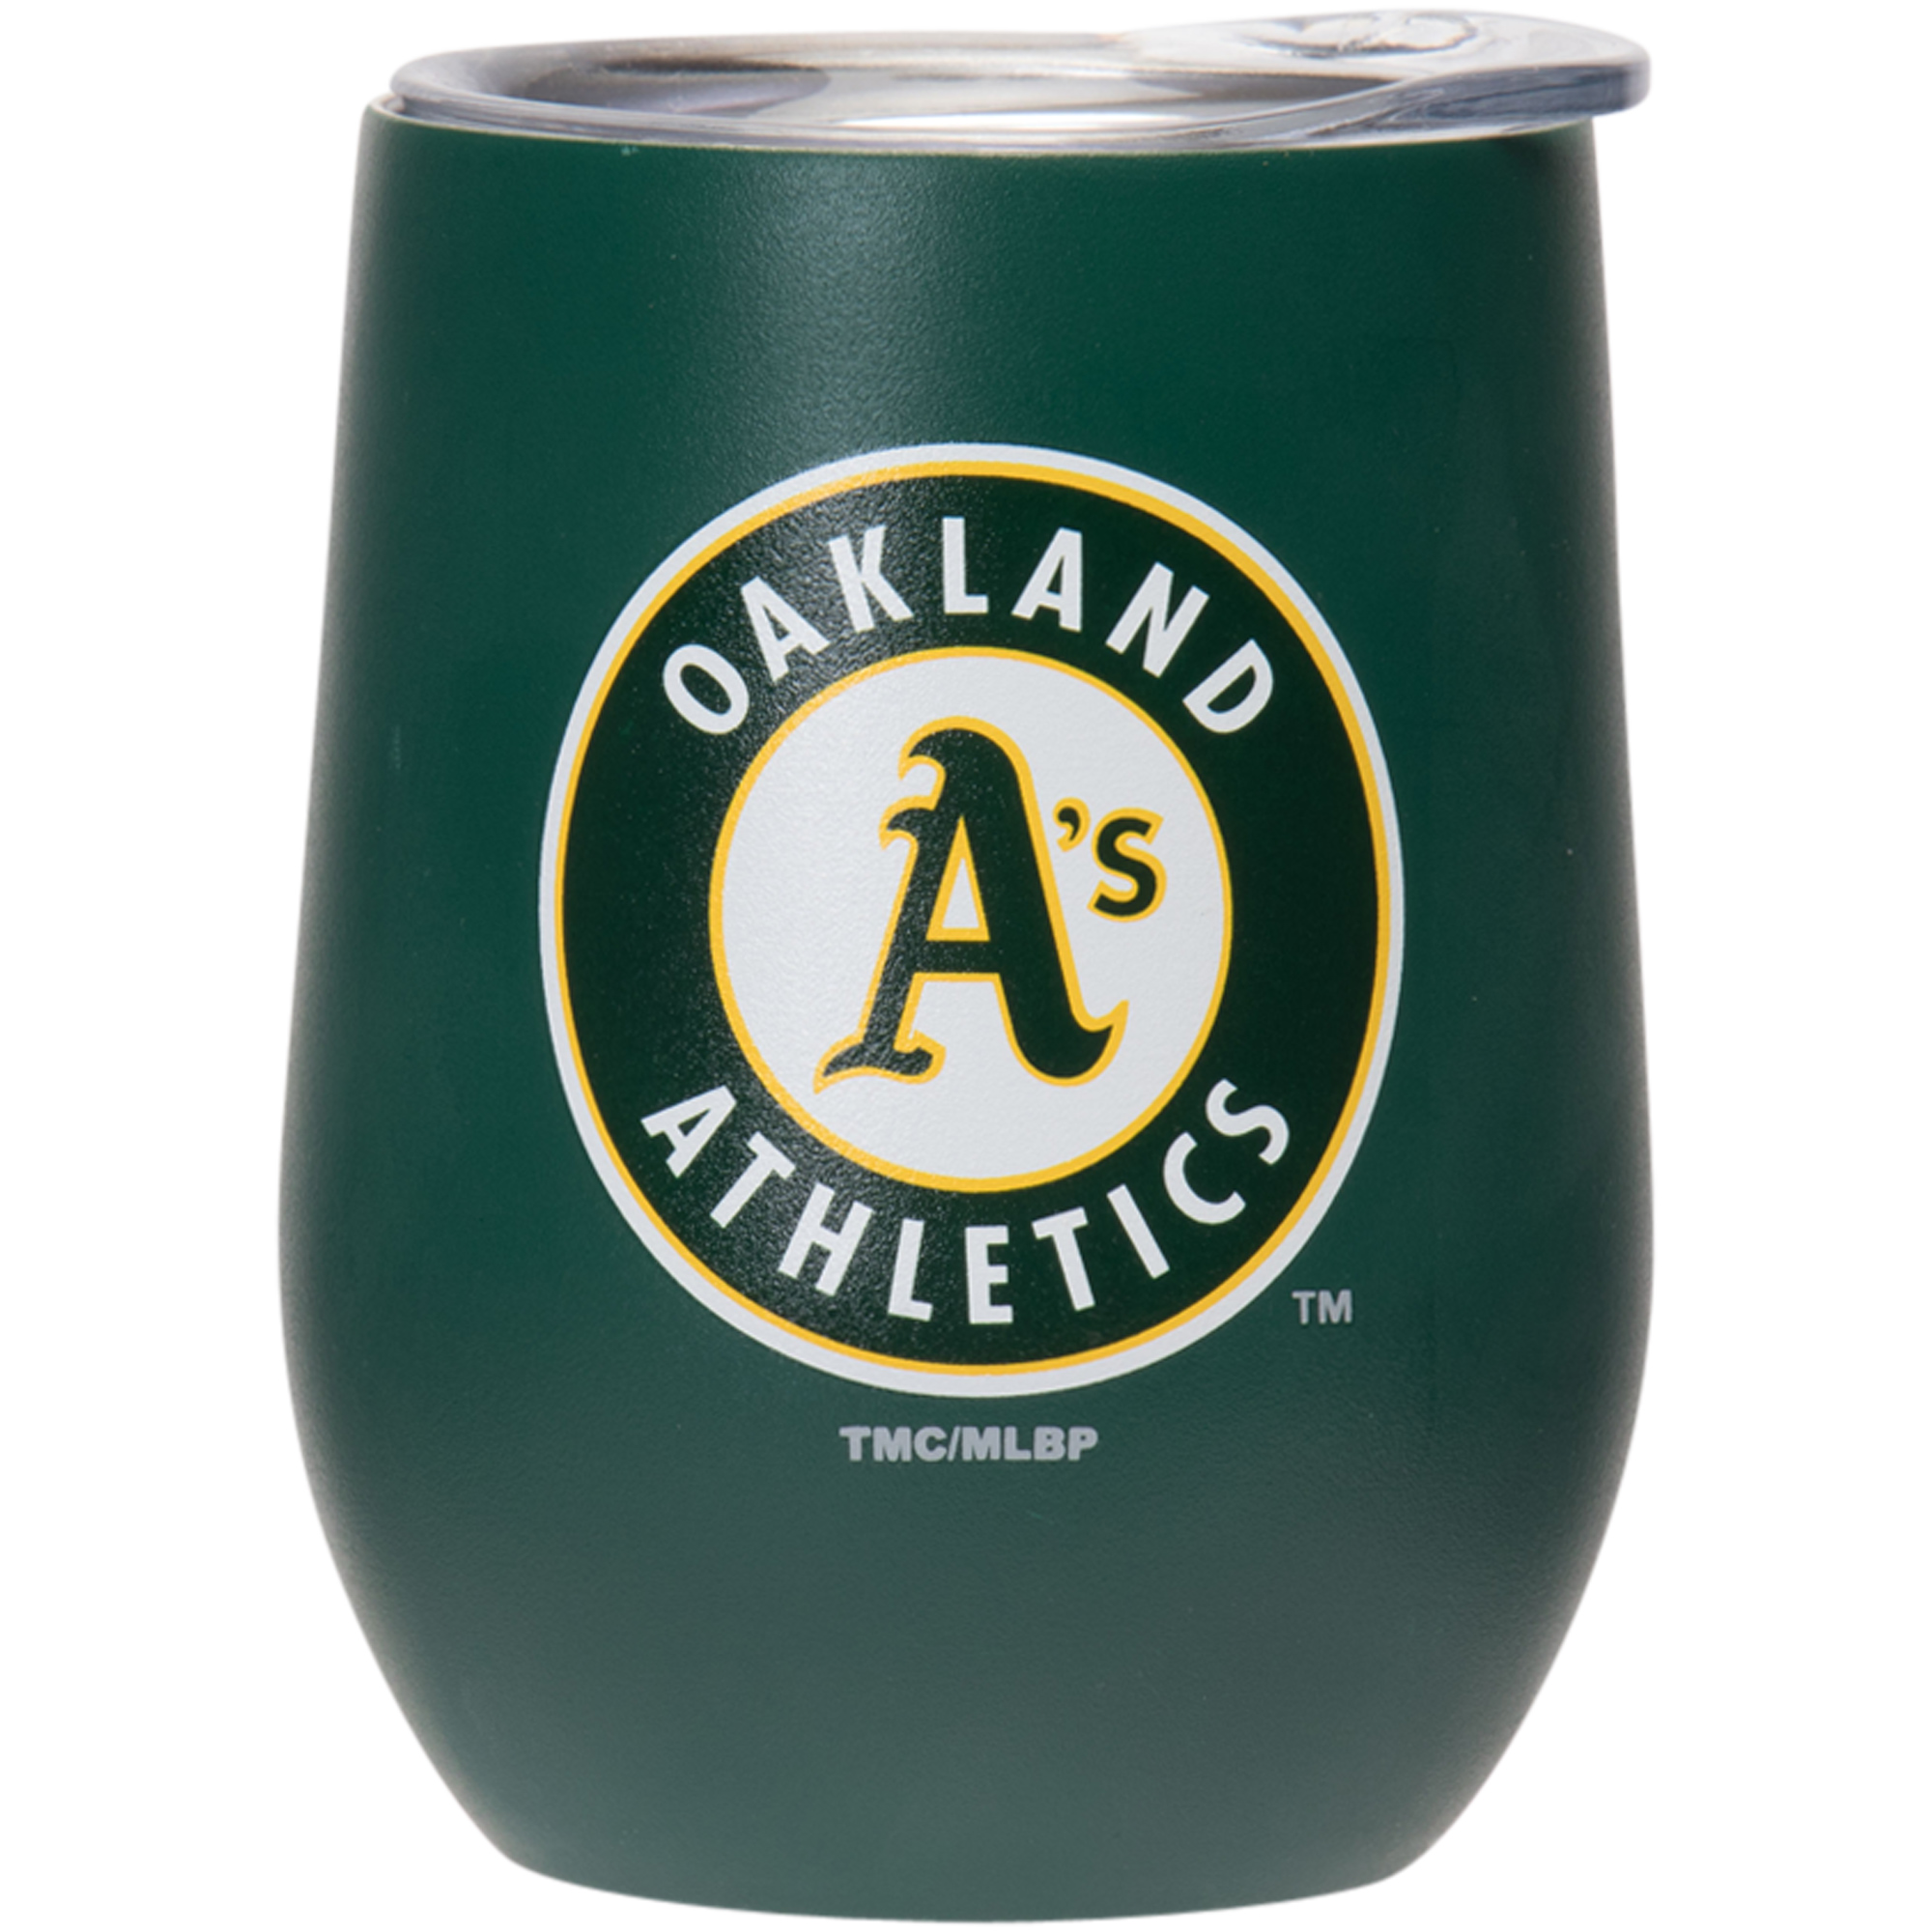 Oakland Athletics 15oz. Matte Stainless Steel Stemless Tumbler - No Size